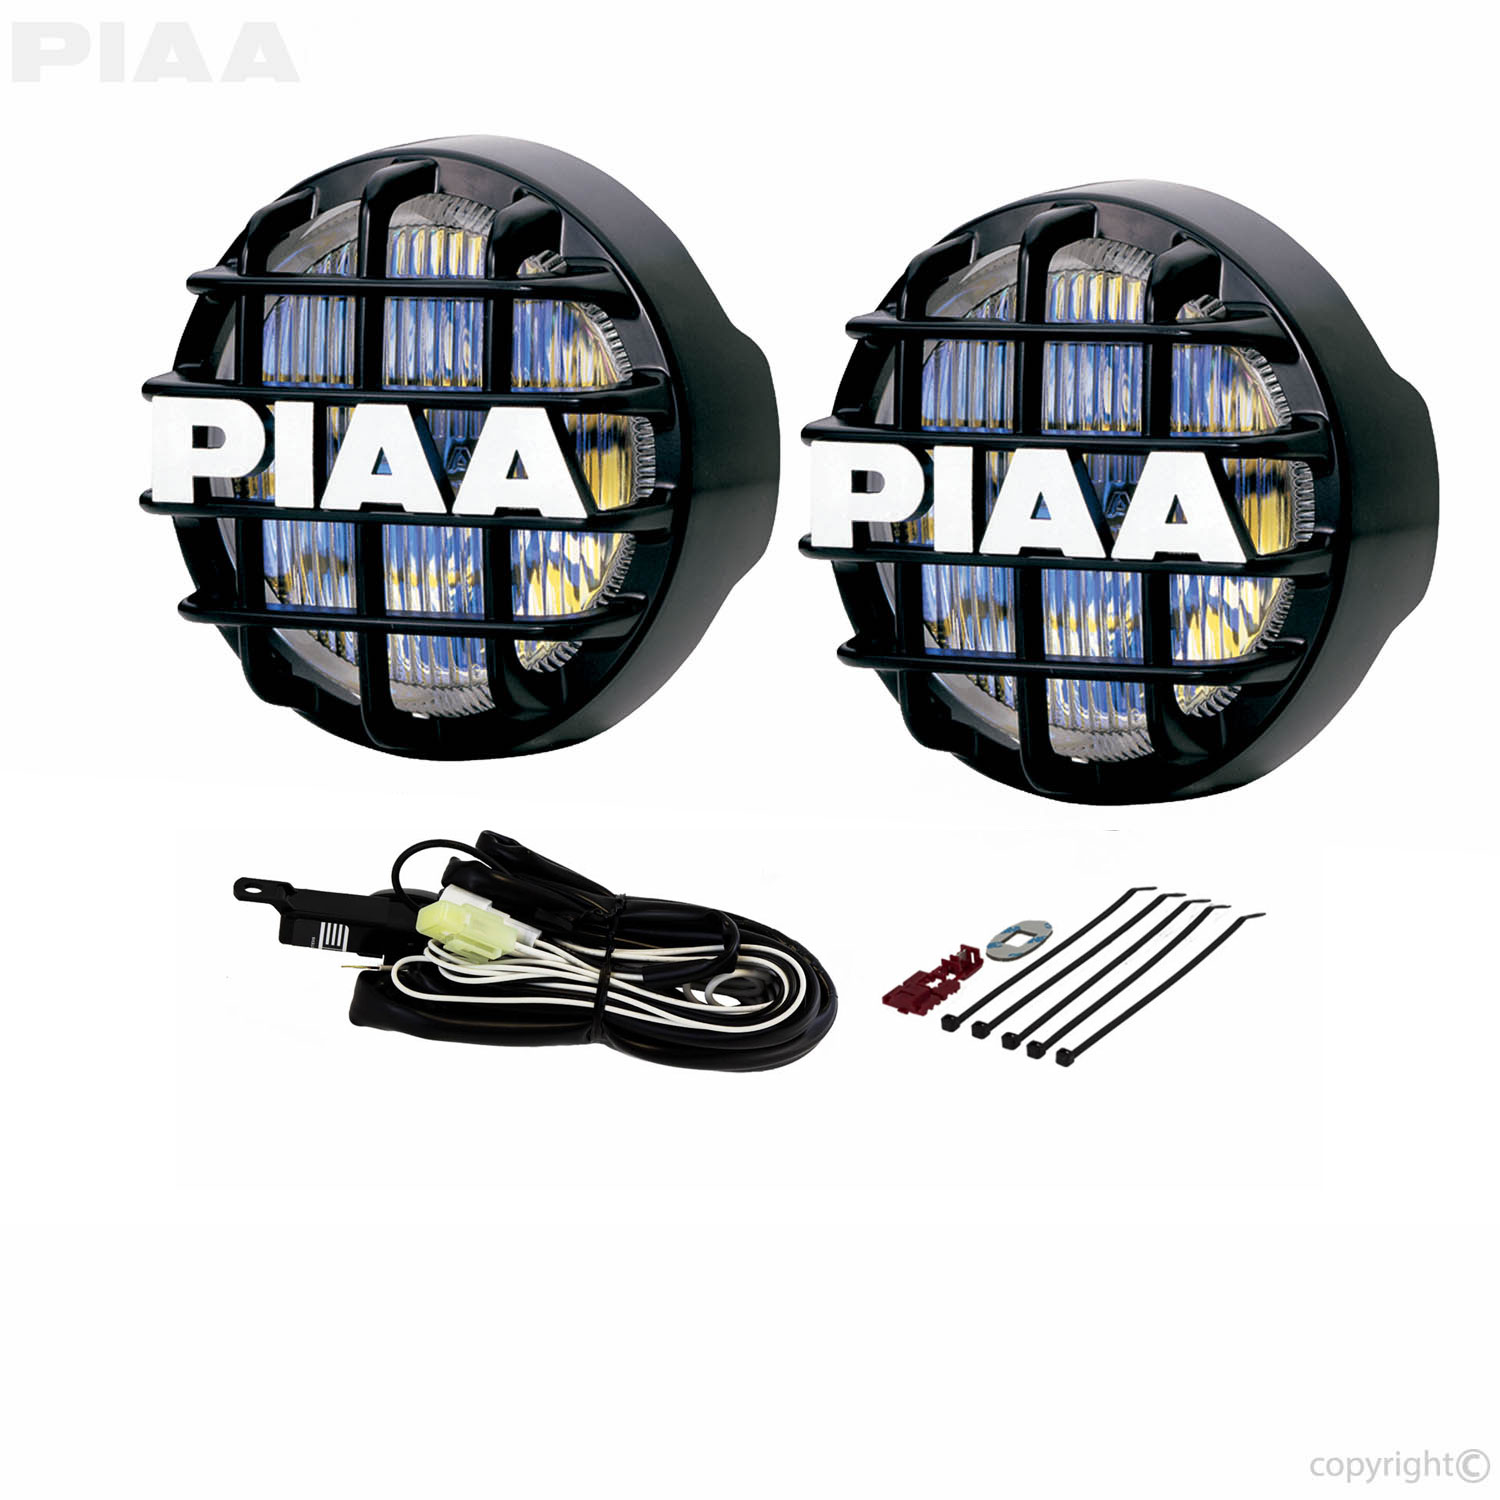 piaa 05161 510 contents hr?bw=1000&w=1000&bh=1000&h=1000 piaa 510 ion yellow fog halogen lamp kit 5161 piaa fog light wiring diagram at couponss.co